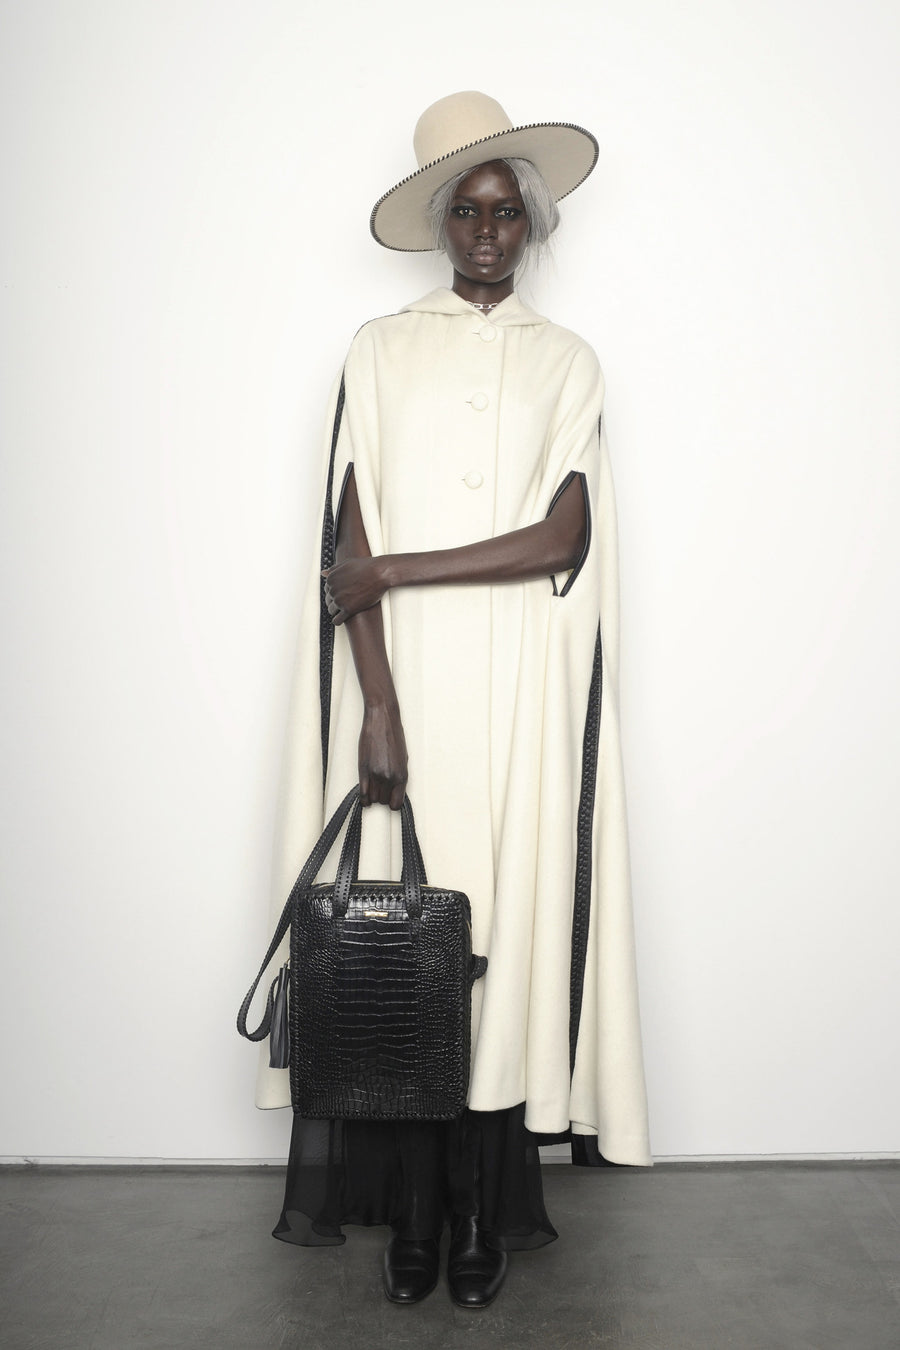 Ajak Deng IMG Model AW15 Queen of Thieves Black Shiny Reflective Embossed Croc Crocodile Alligator Cowhide Leather Vertical Folio Computer Work Briefcase Brief Bag Wendy Nichol Luxury Handbag Purse Designer Handmade in NYC New York City Whipstitch Cross Body Adjustable Strap Zip Zipper fringe Tassel pull durable handles interior pocket High Quality Leather